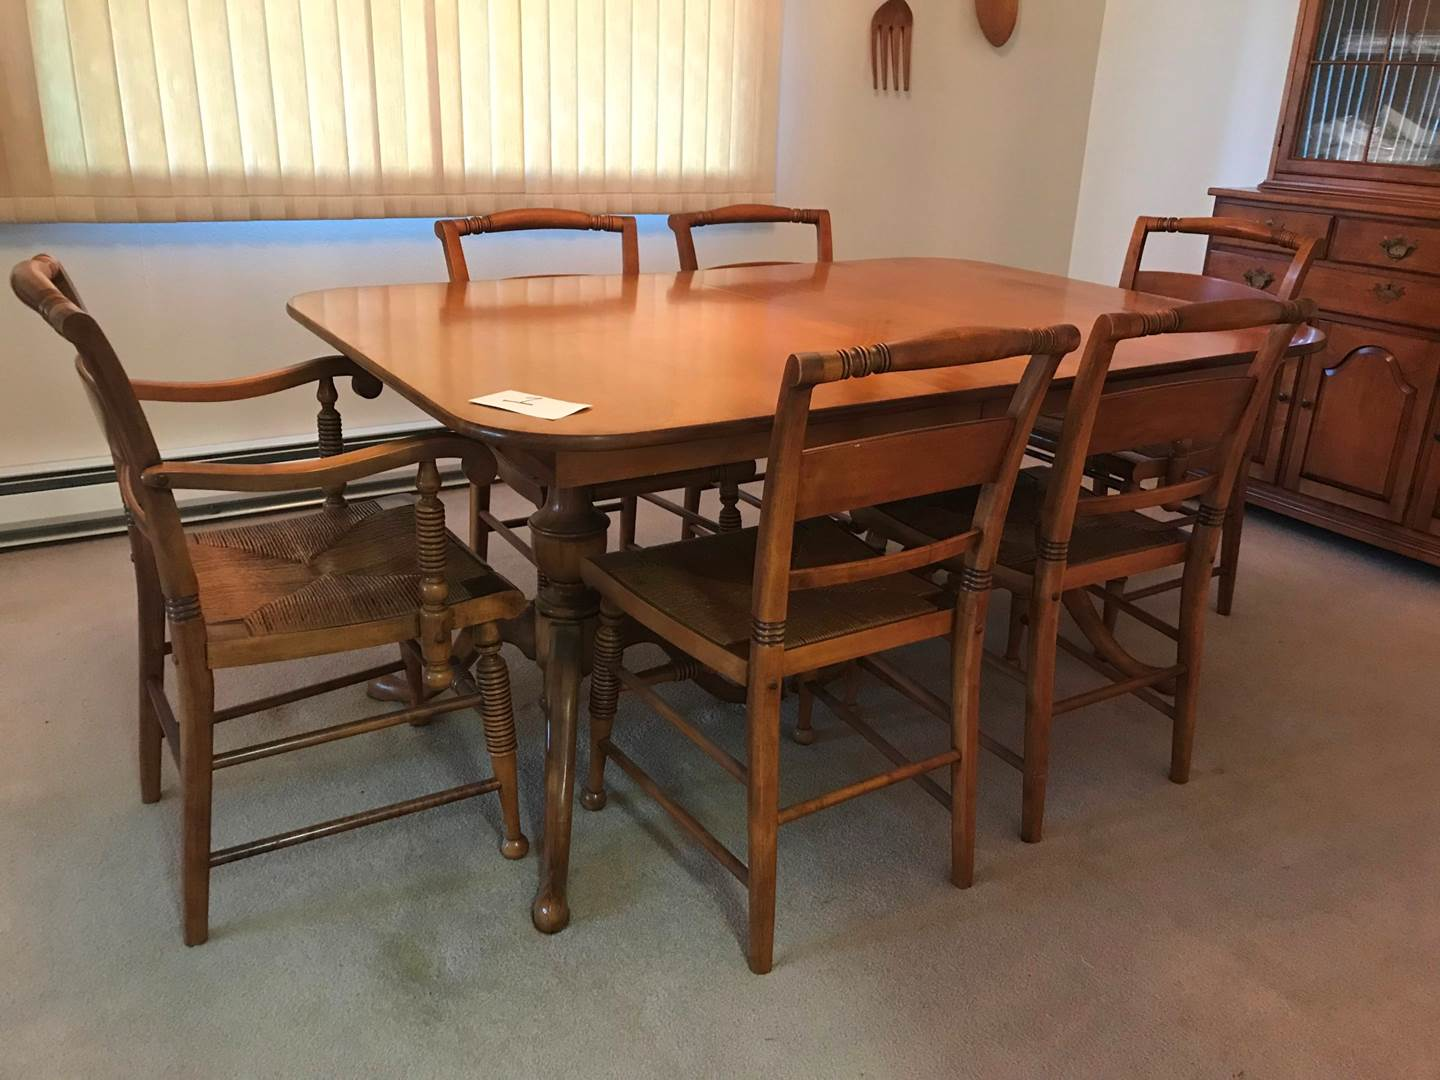 Office Cabin Interior Design, Lot 1 Vintage 1950 S Maple Thomasville Dining Table W 3 12 Leaves 6 Chairs 2 Sets Of Pads Puget Sound Estate Auctions